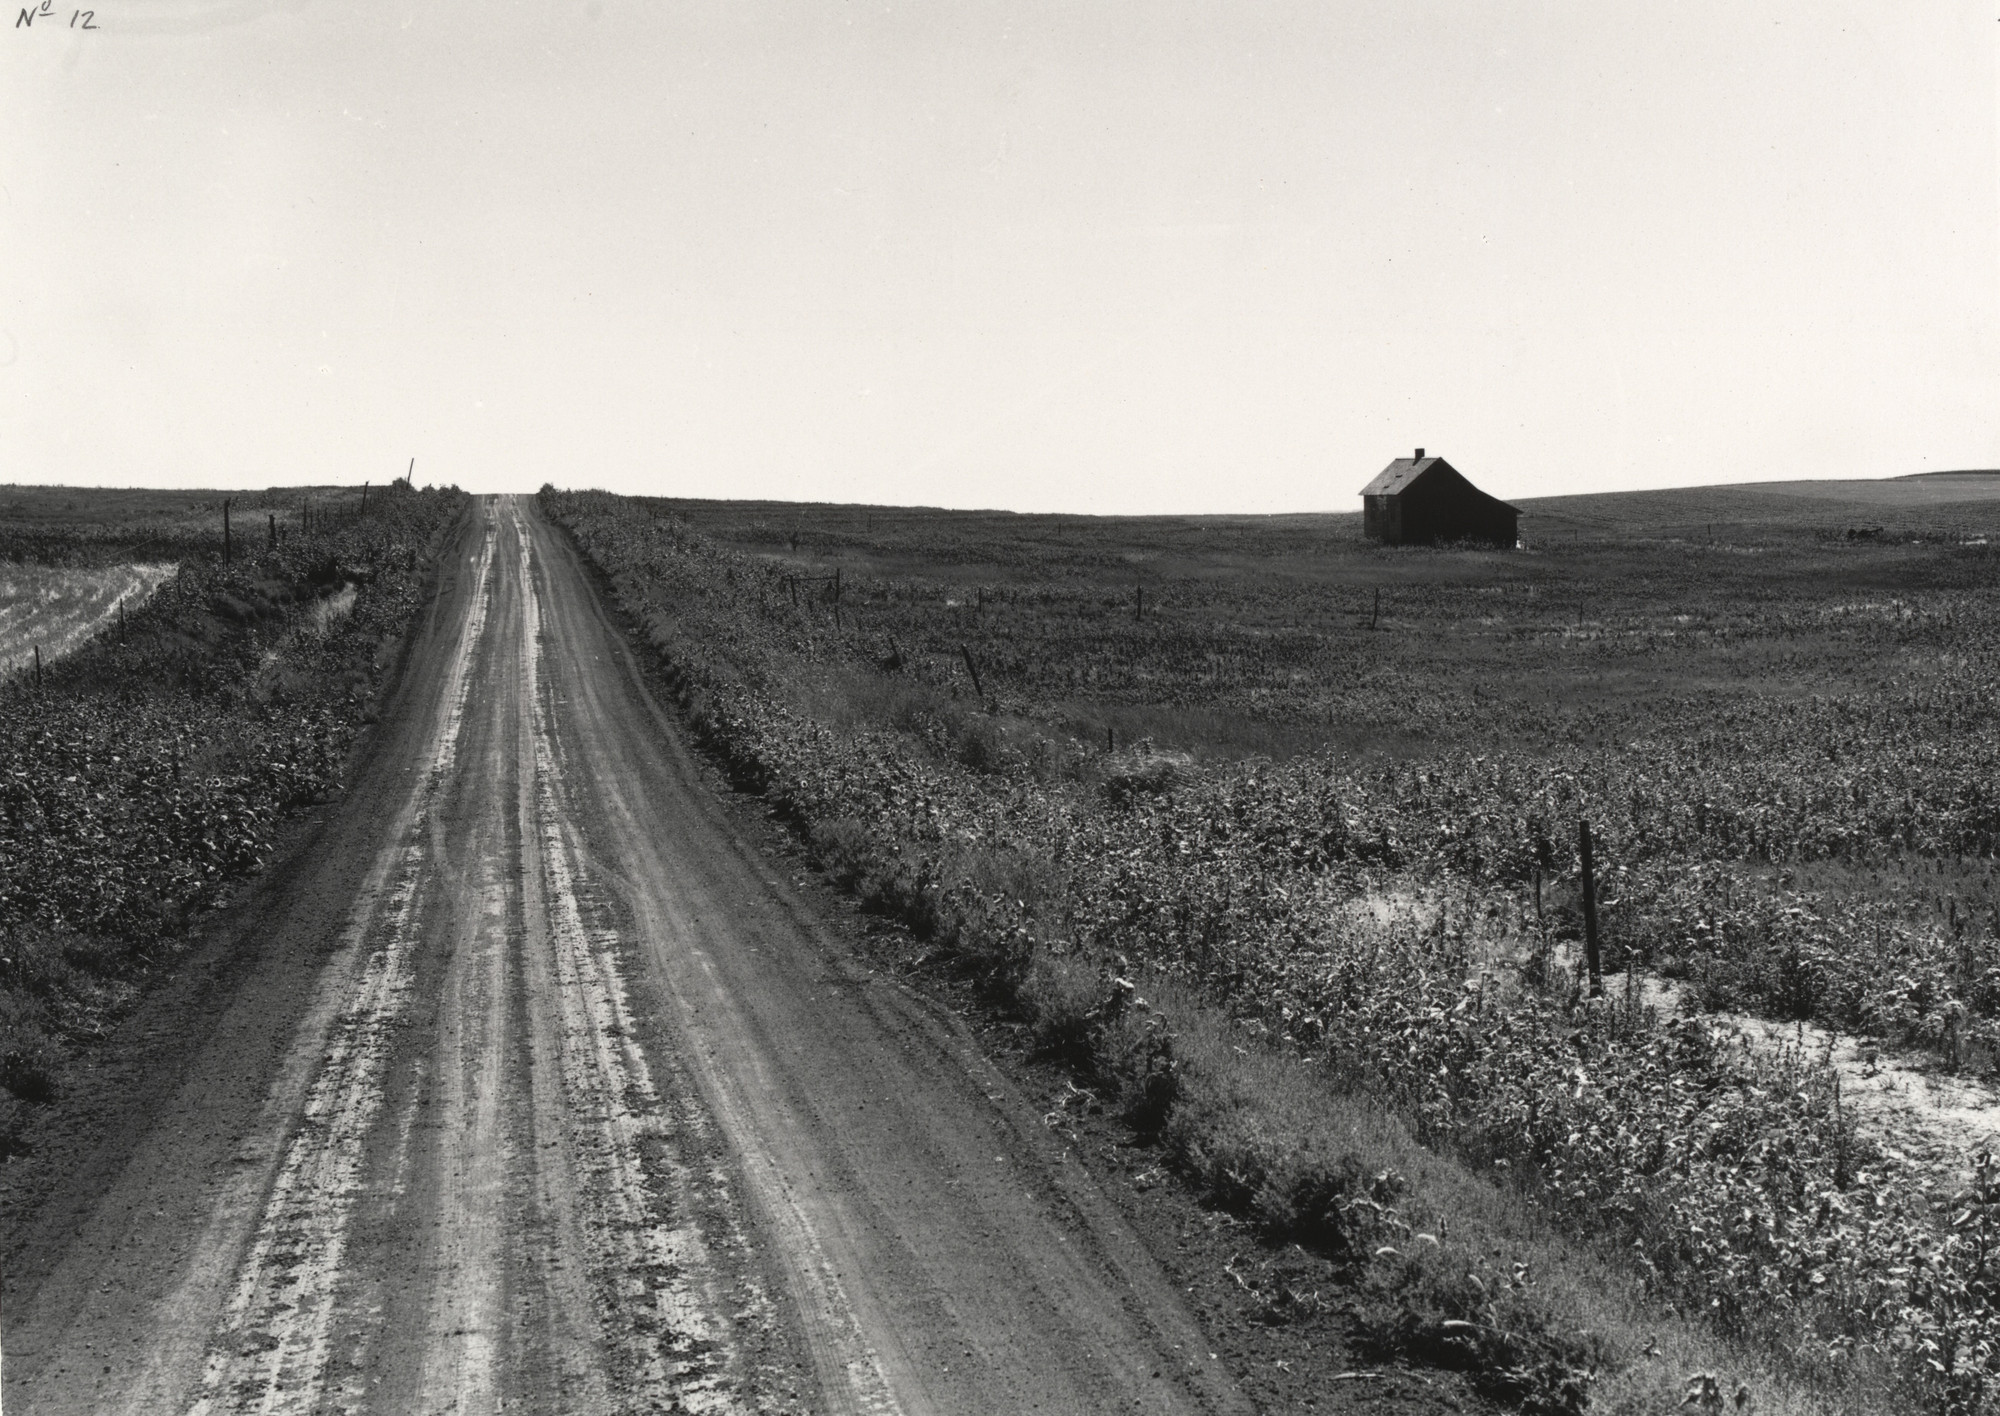 Dorothea Lange. Road on the Great Plains. 1941